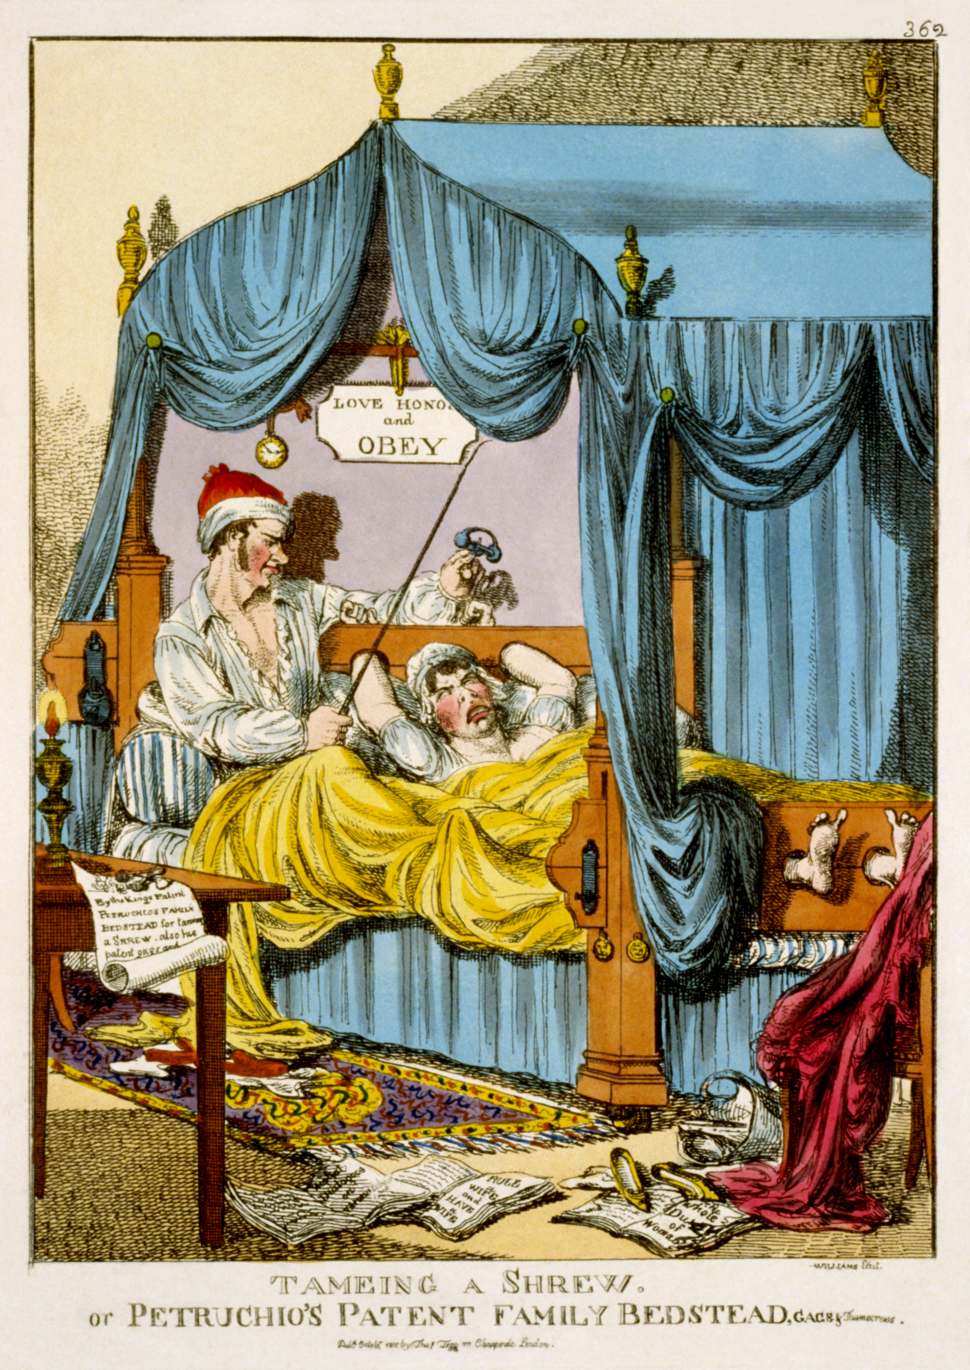 Tameing a Shrew; or, Petruchio%27s Patent Family Bedstead, Gags %26 Thumscrews